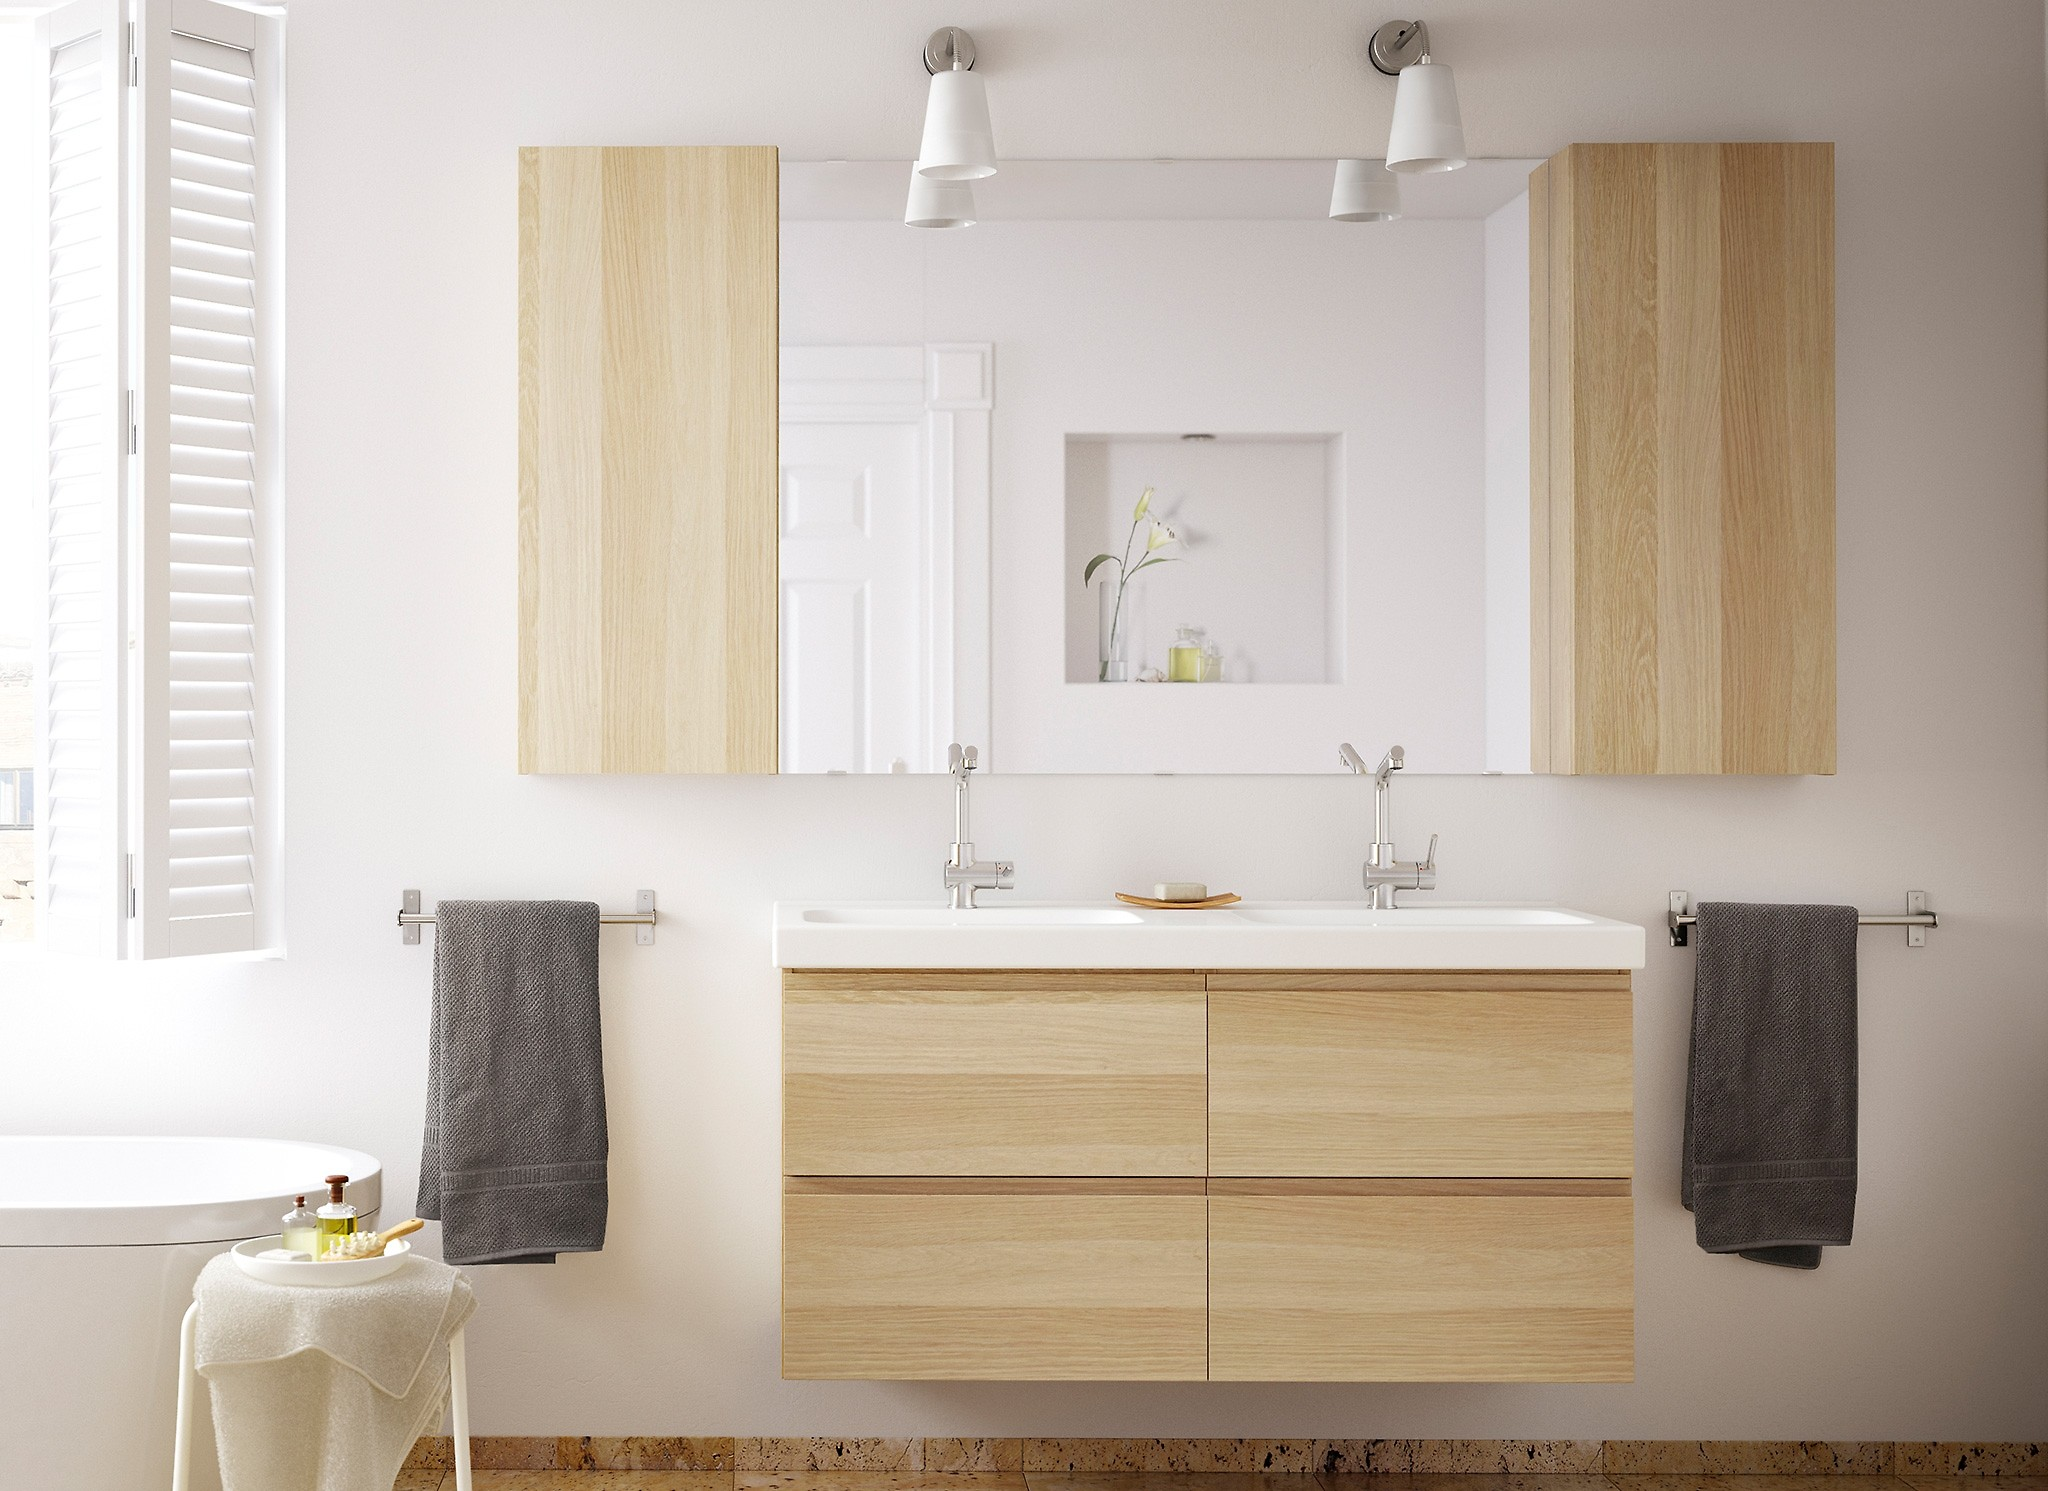 Top Ikea Bathroom Planner Architecture - Bathroom Design Ideas ...